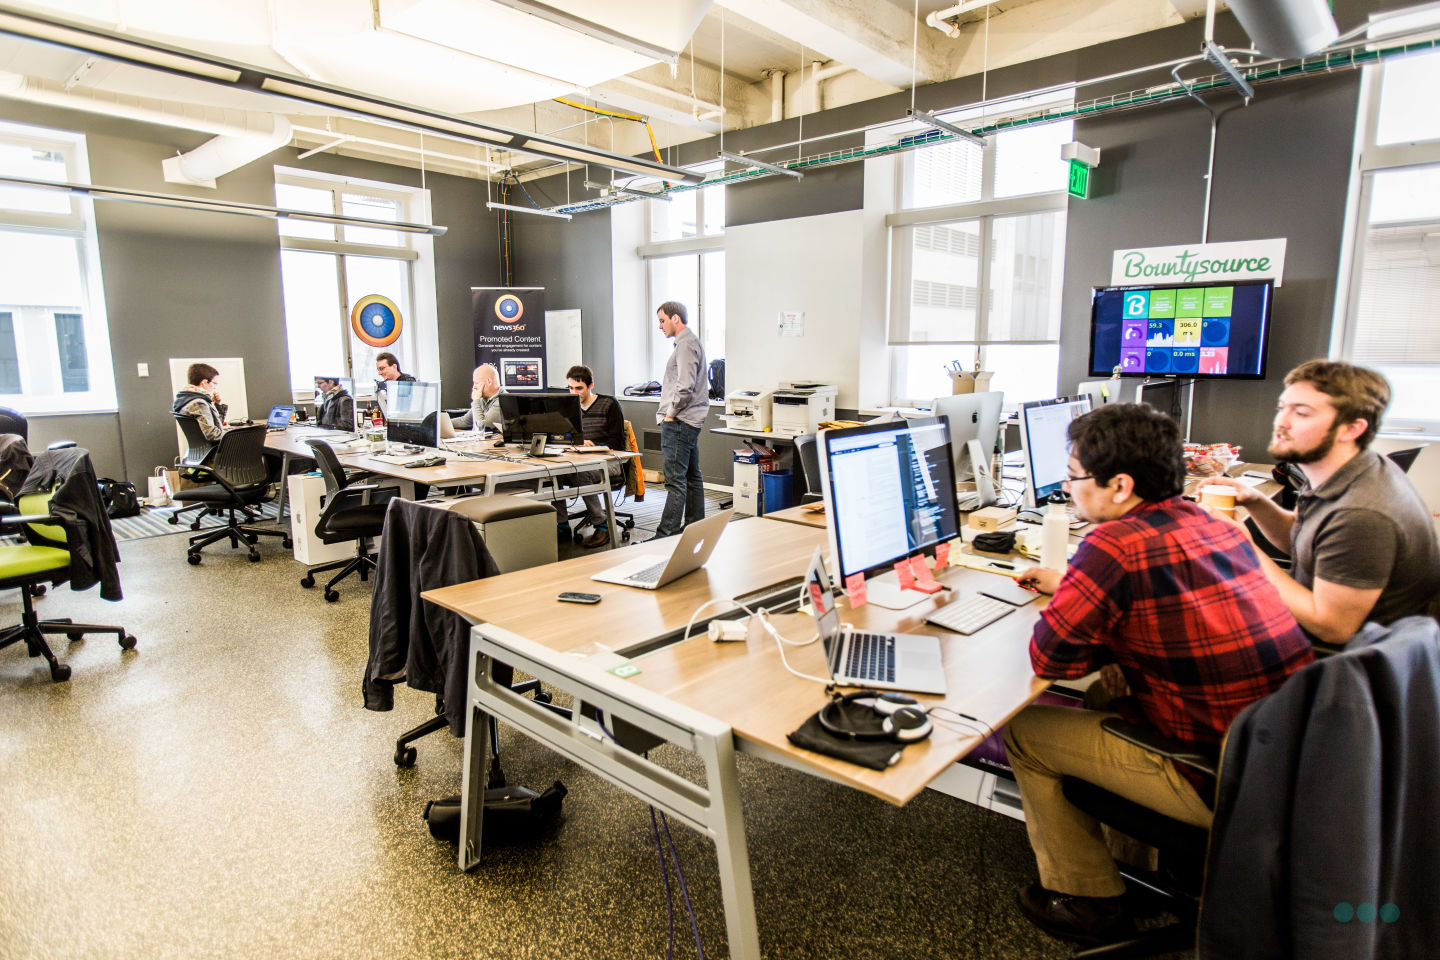 Startups Use Gig Economy to Outsource Jobs